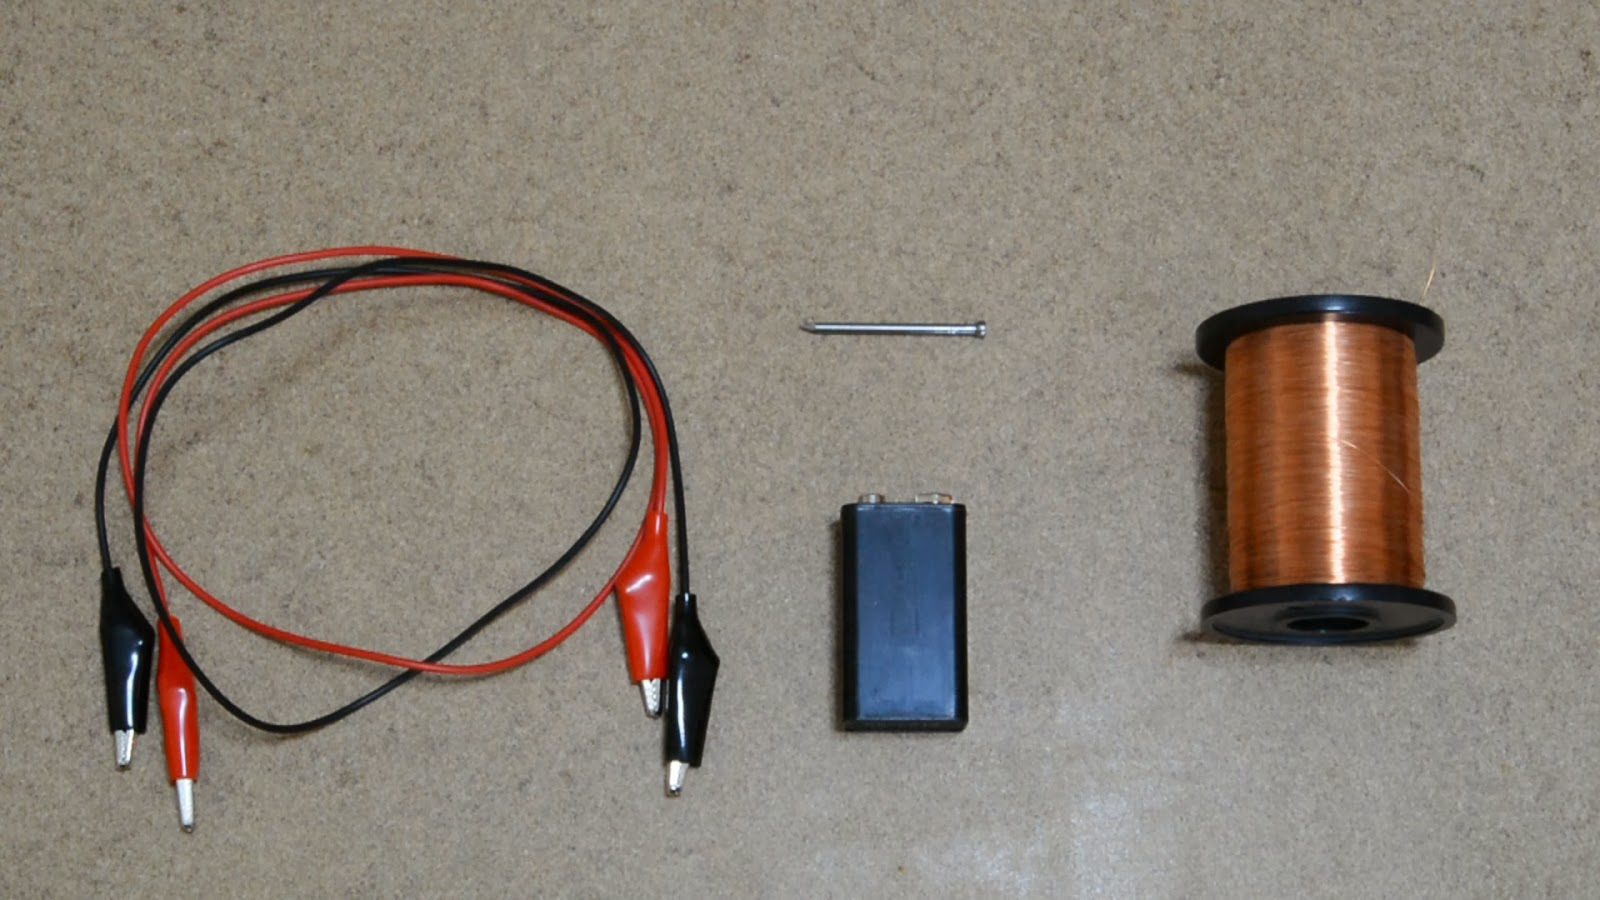 Go repairs blog how to make an electromagnet for Waste material items